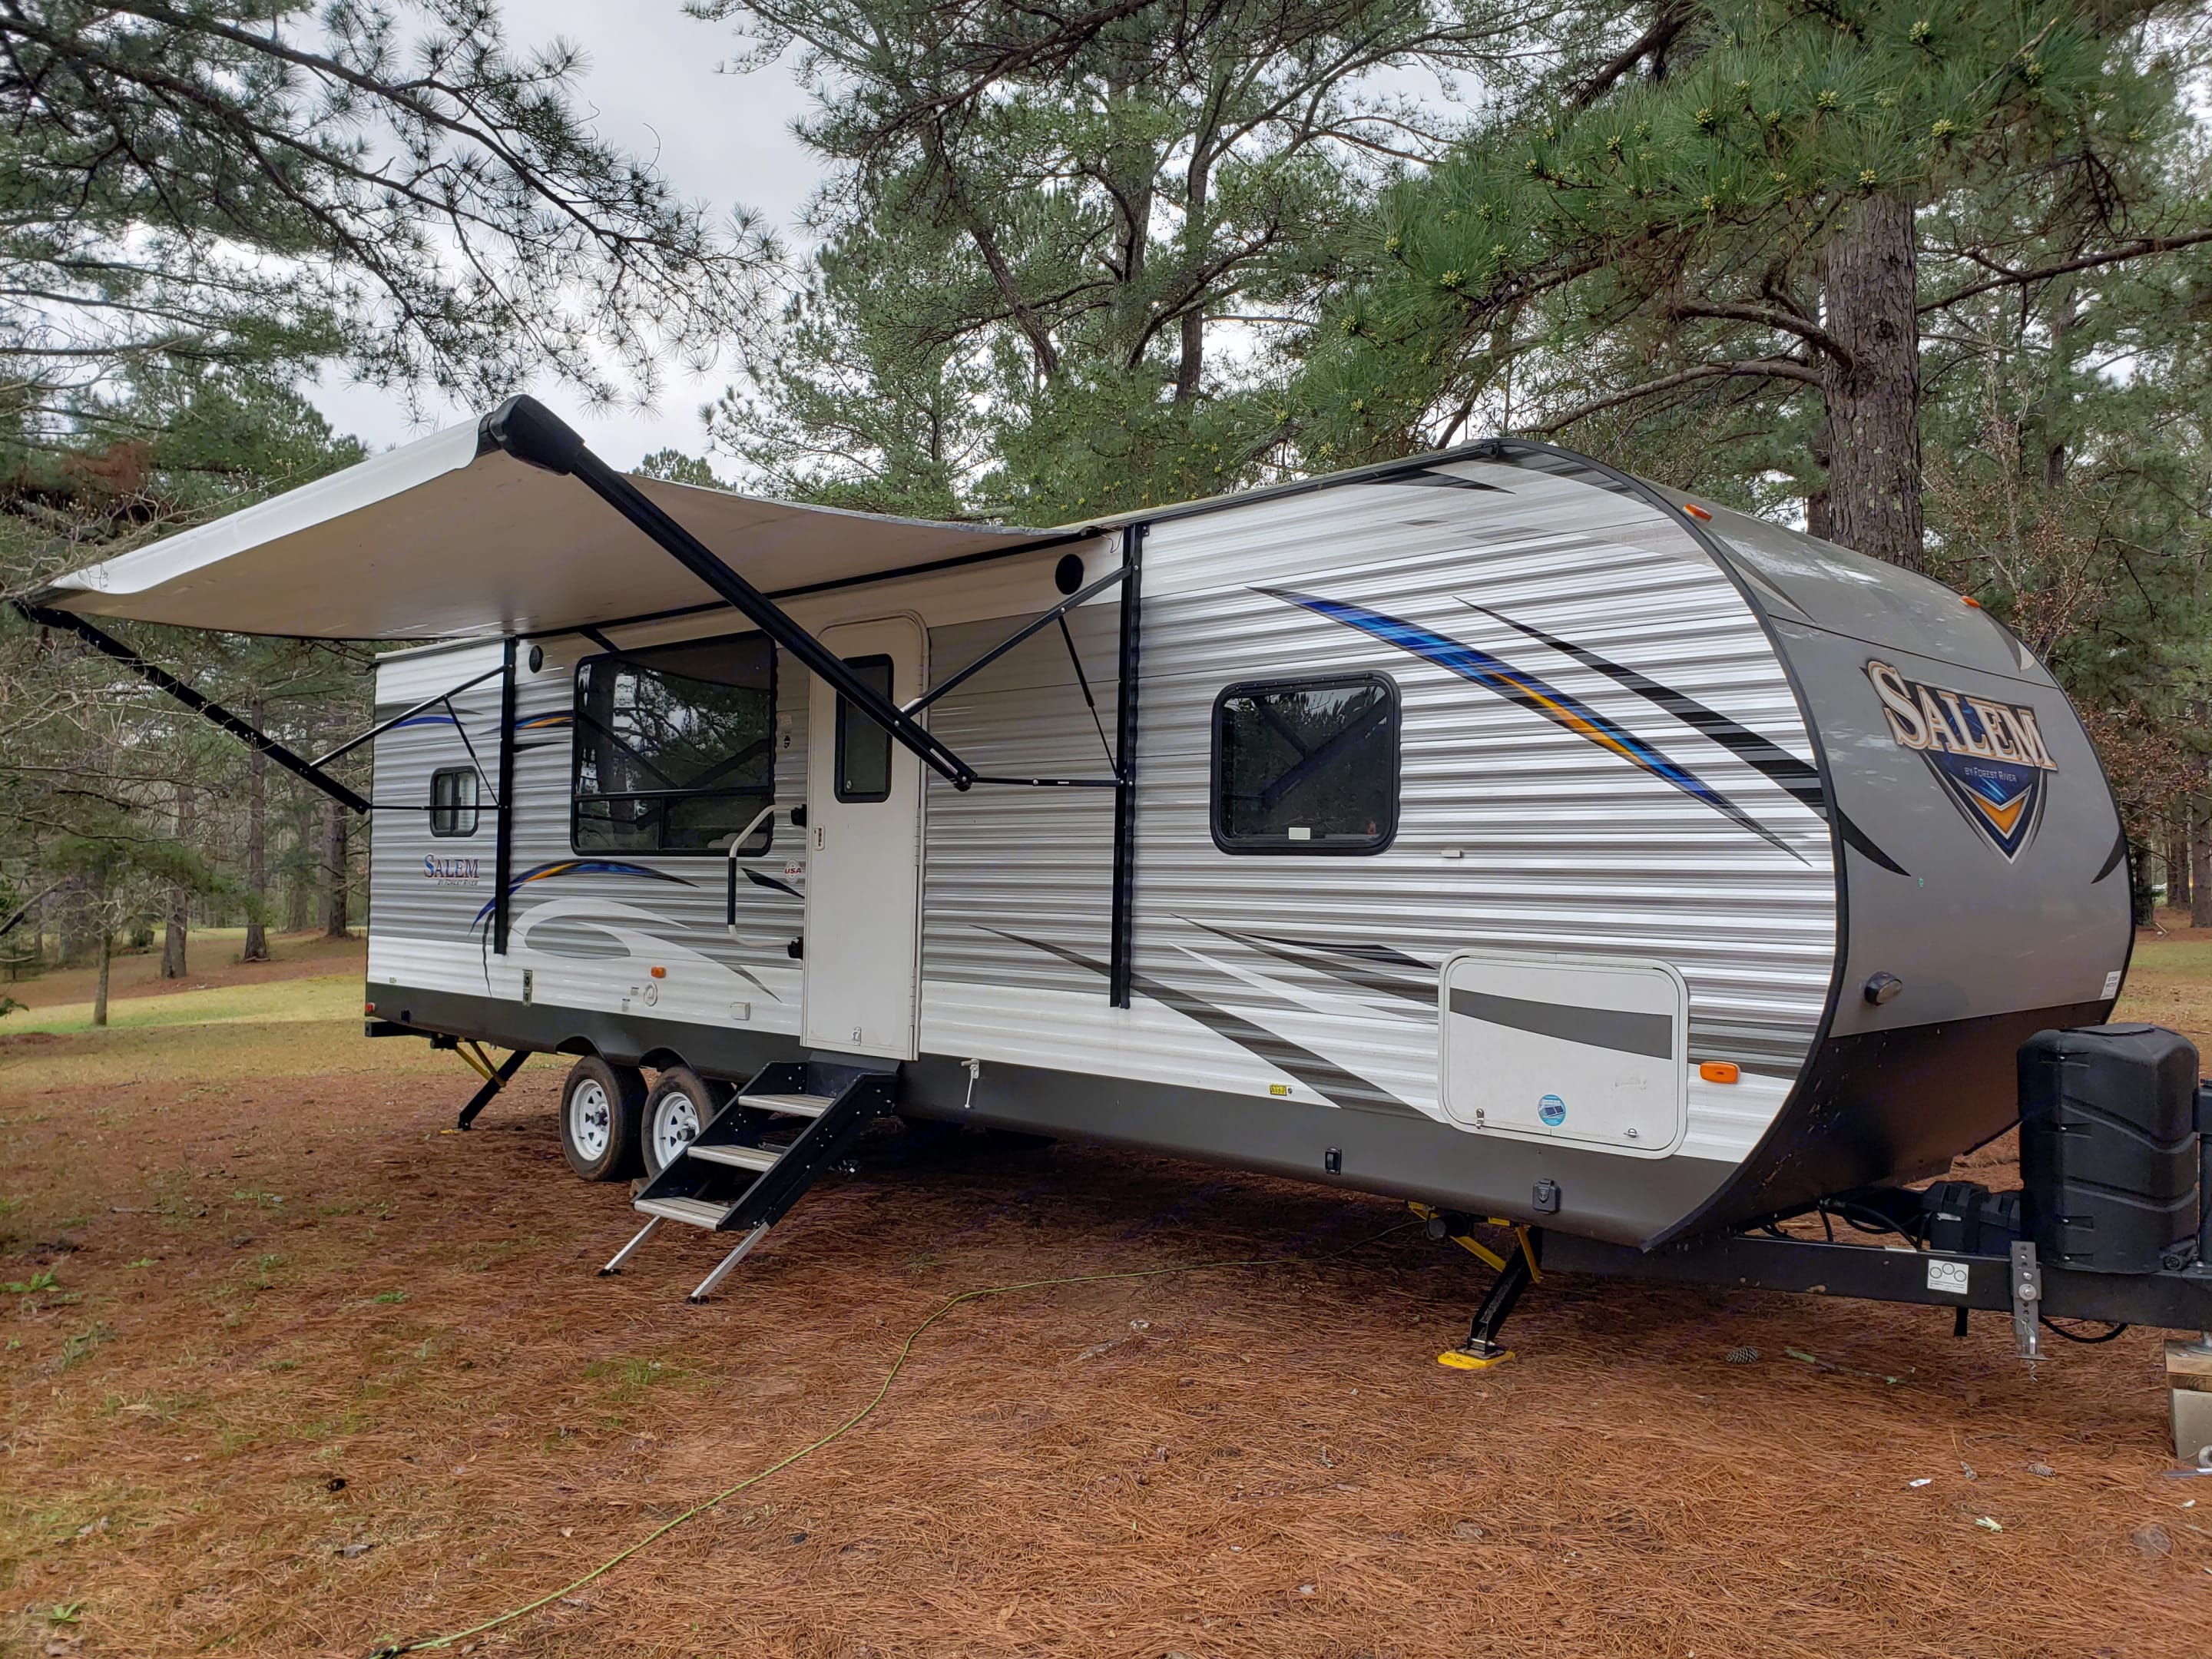 Electric awning, easy fold out stairs, outdoor speakers and LED lighting. . Forest River Salem 2018